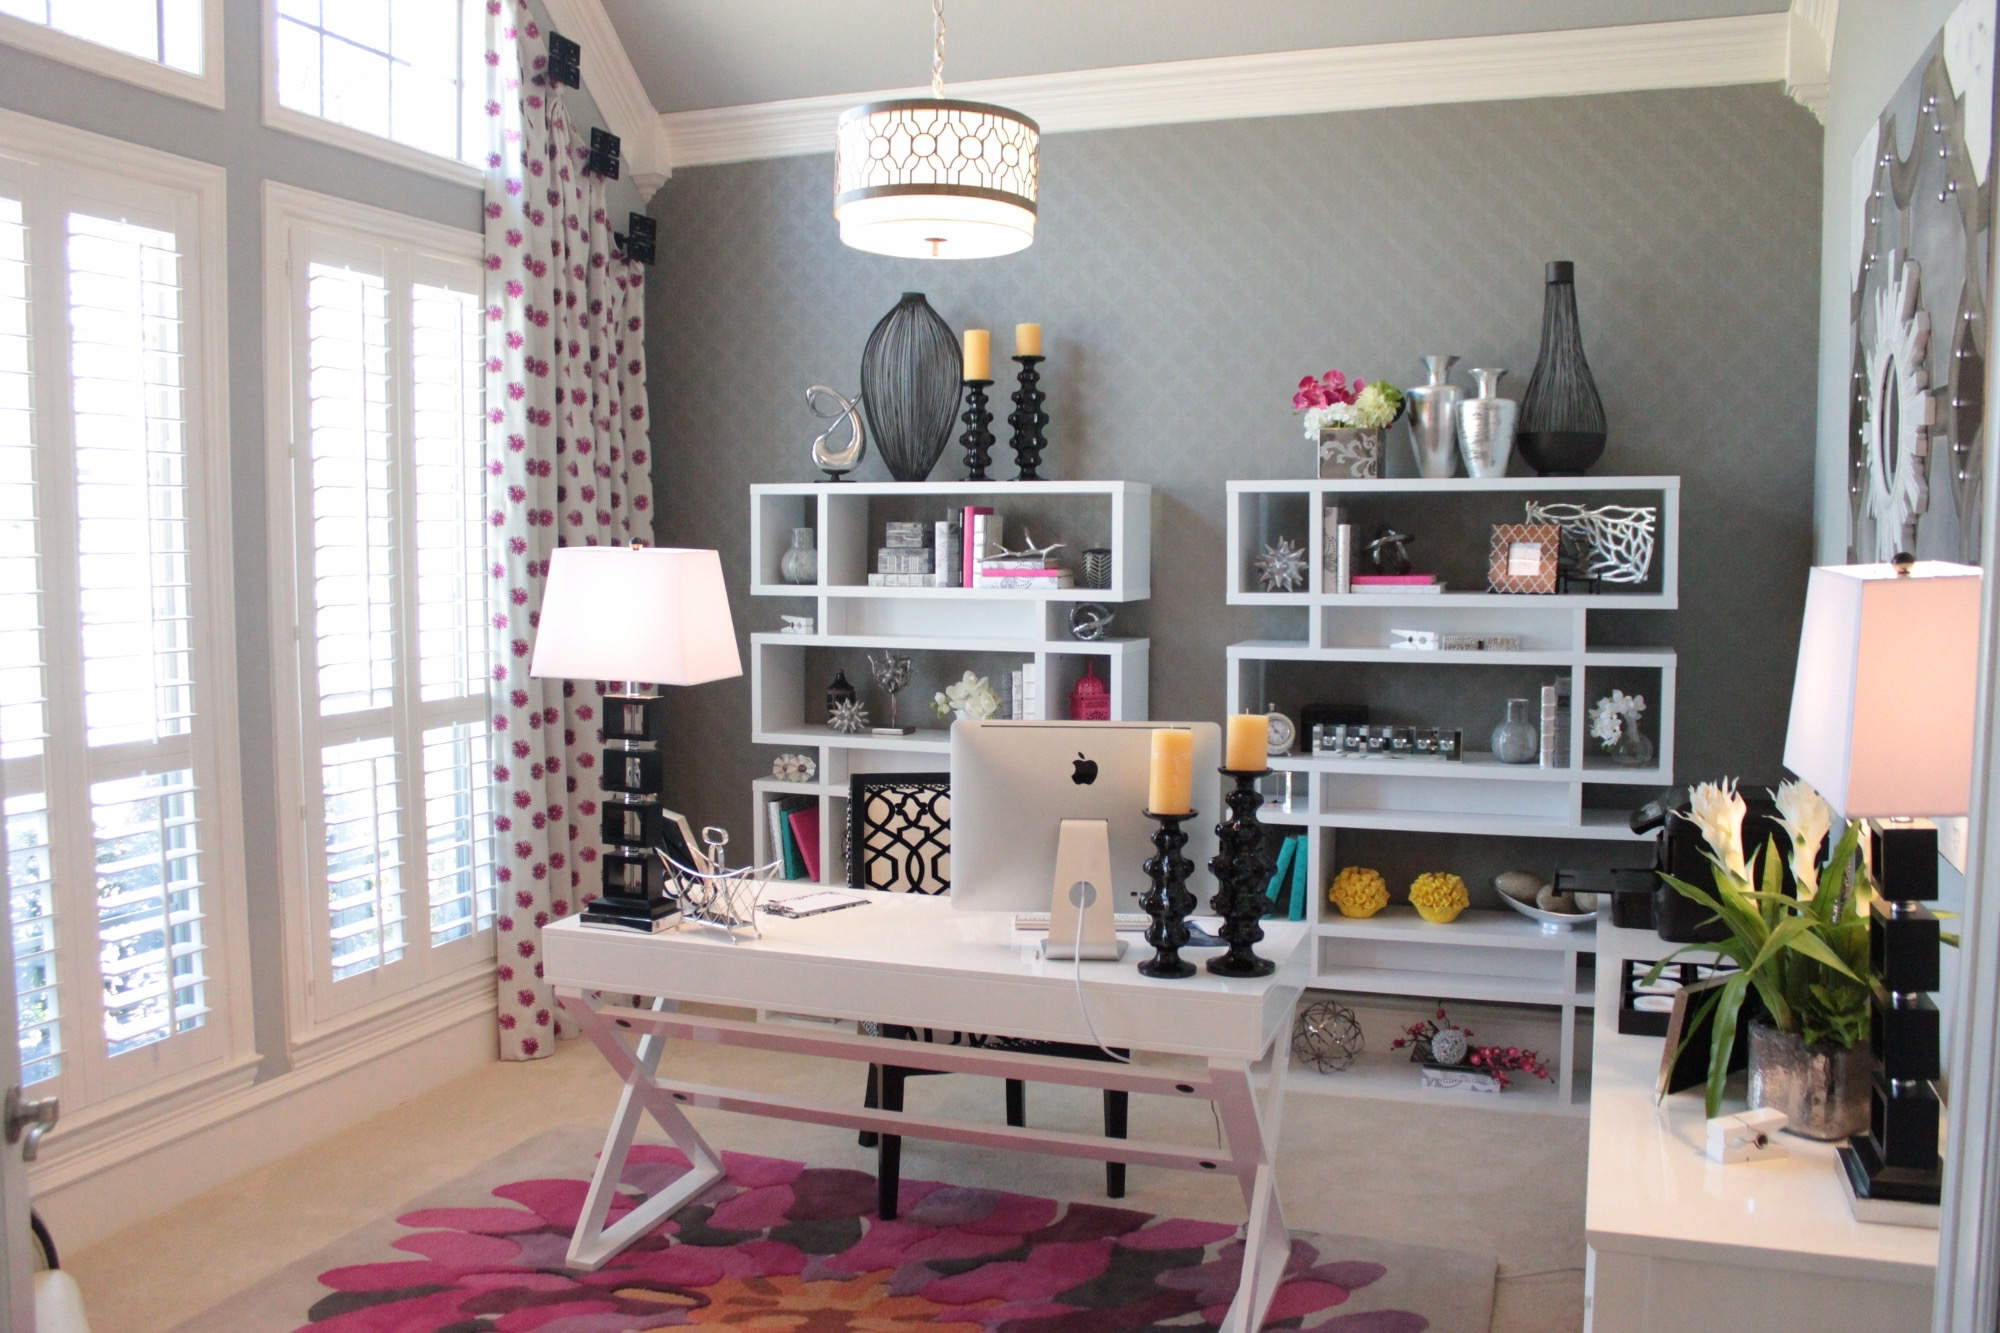 Fabulously Feminine Home Office With Pops Of Pink (Image 21 of 50)